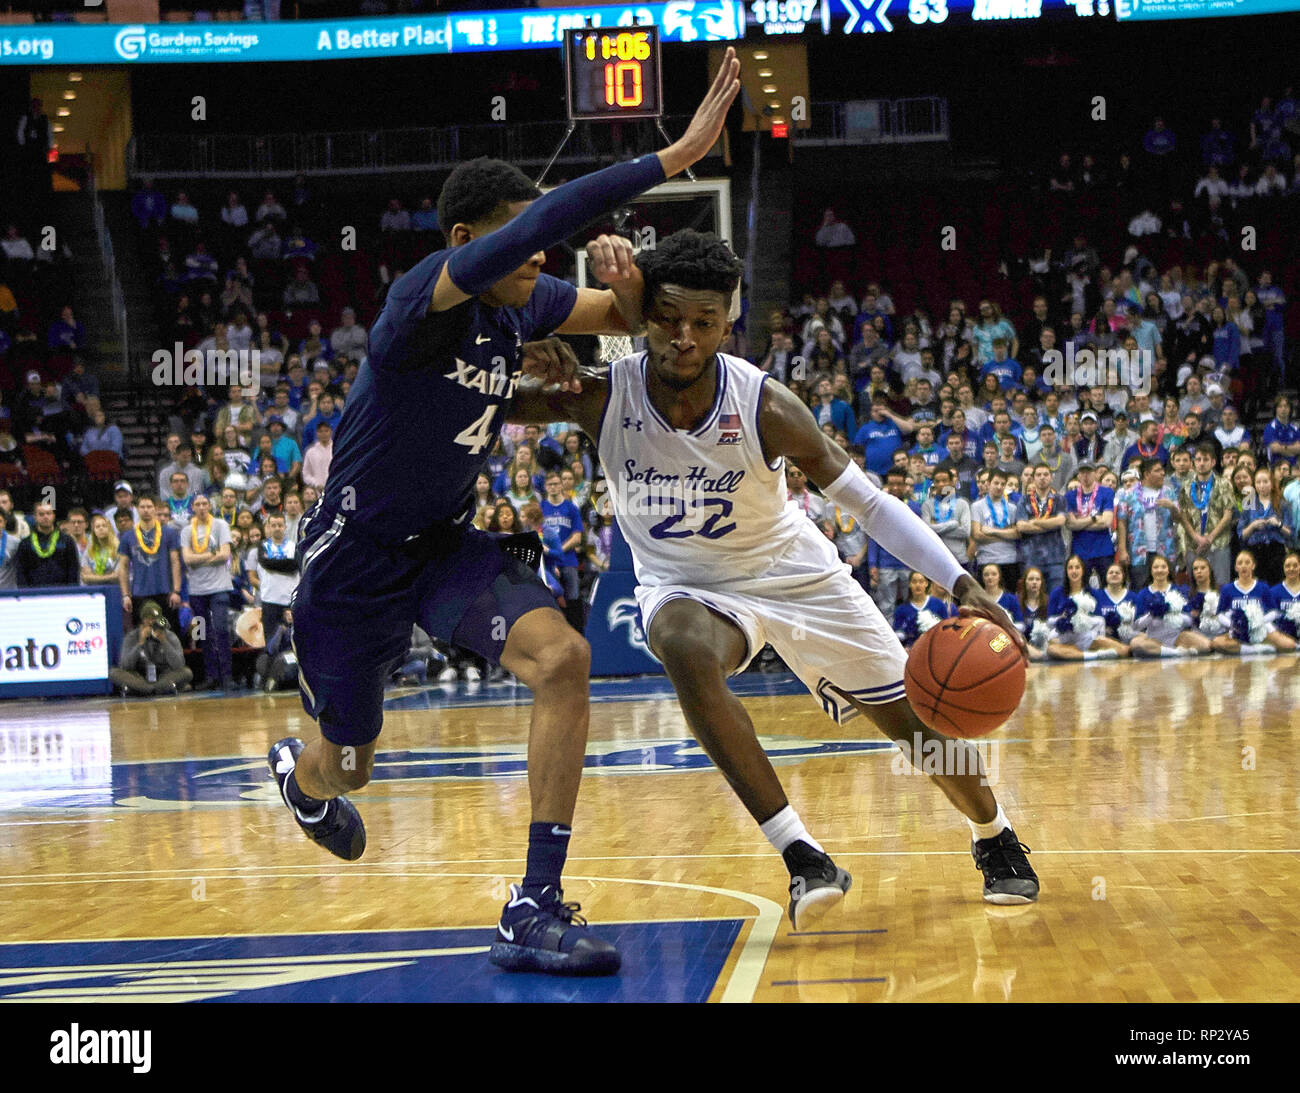 4d67dcf6c01 Seton Hall Pirates guard Myles Cale (22) gets pressure from Xavier  Musketeers guard Elias Harden (4) in the second half between the Xavier  Musketeers and ...